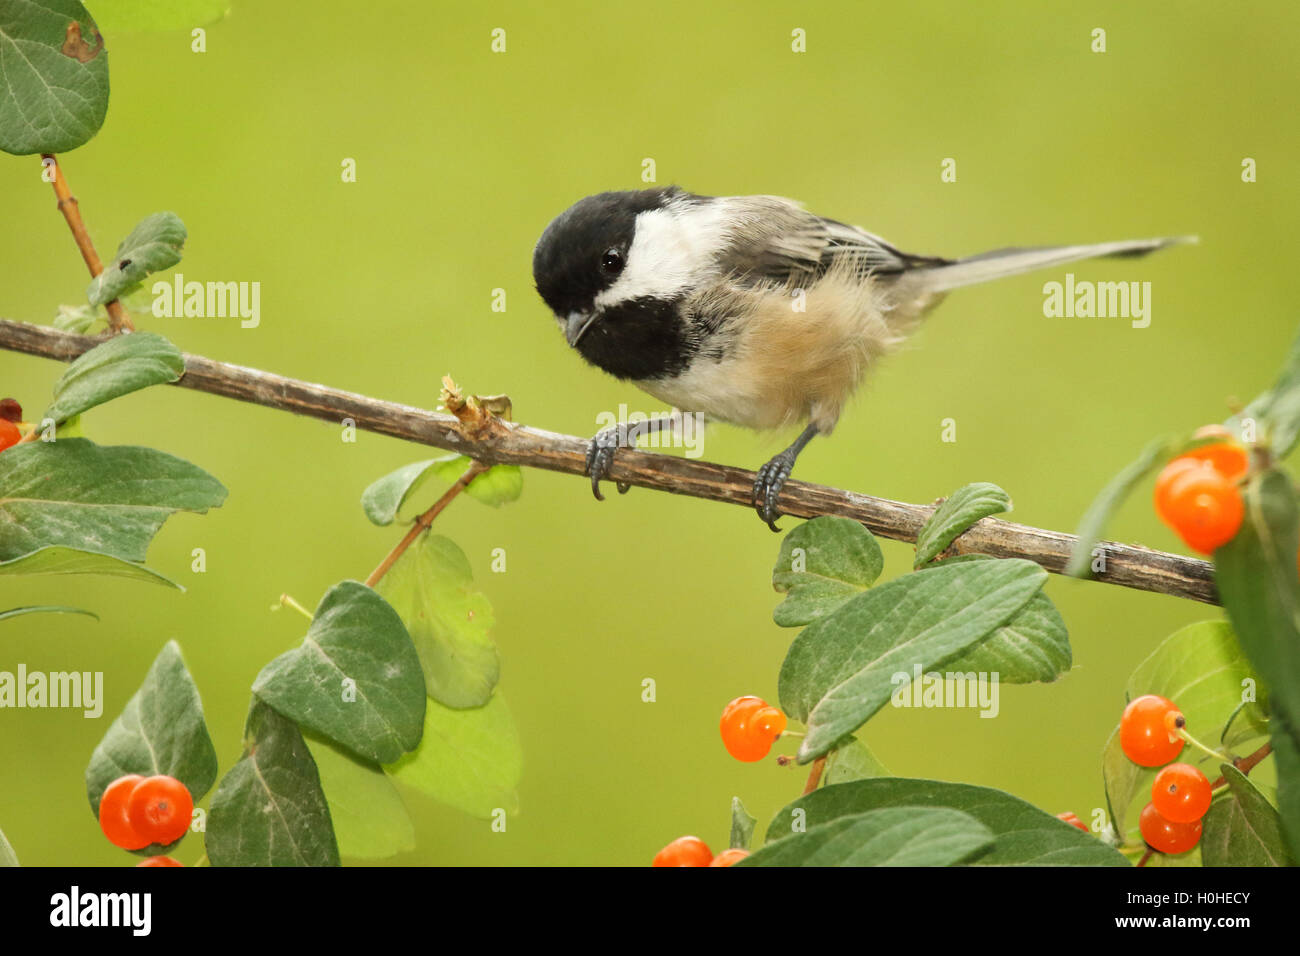 A Black-capped Chickadee among honeysuckle berries. - Stock Image